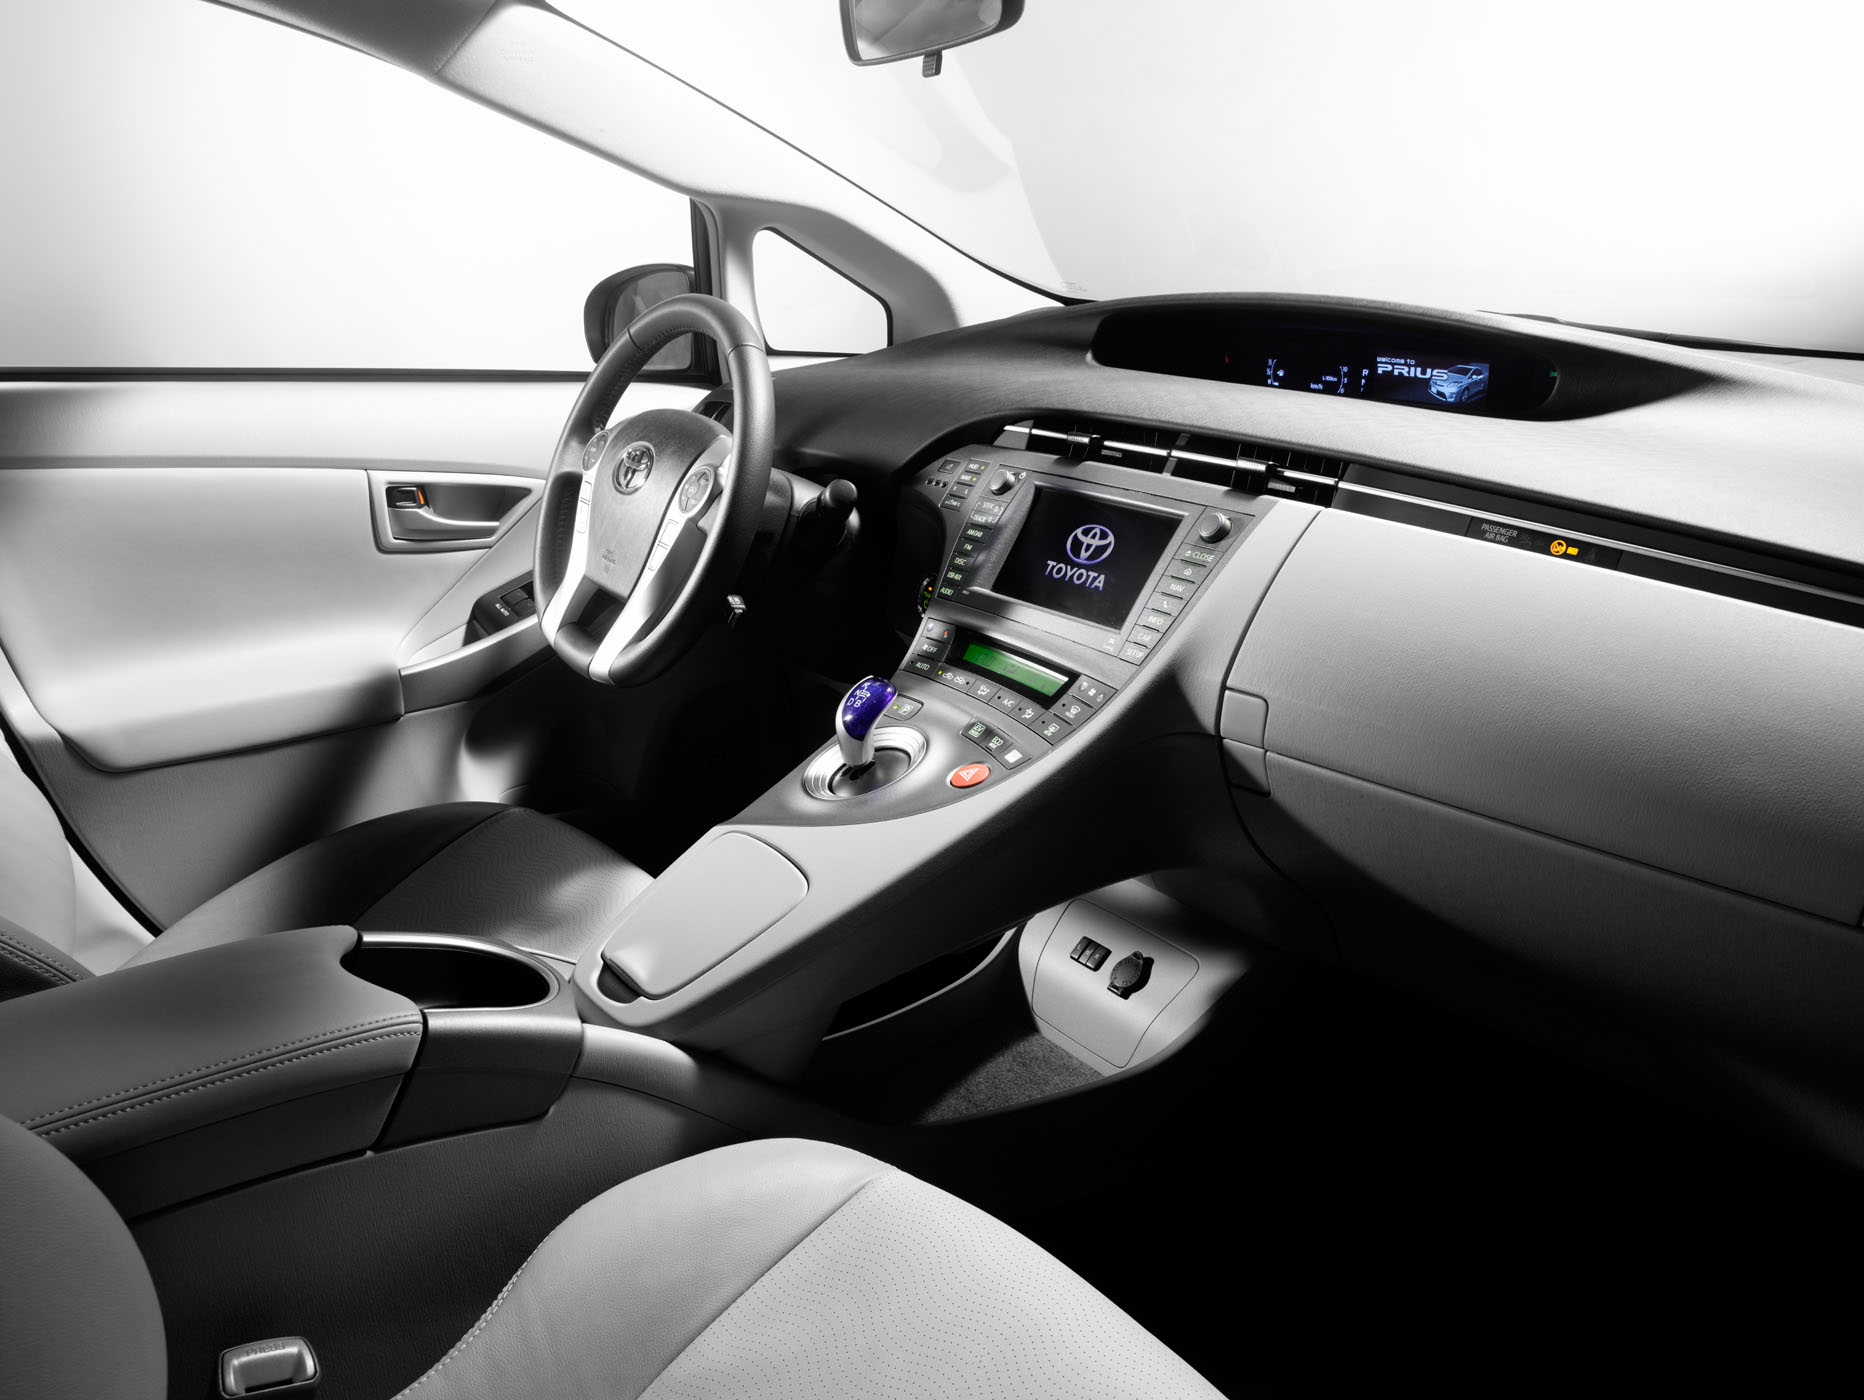 New Prius Interior